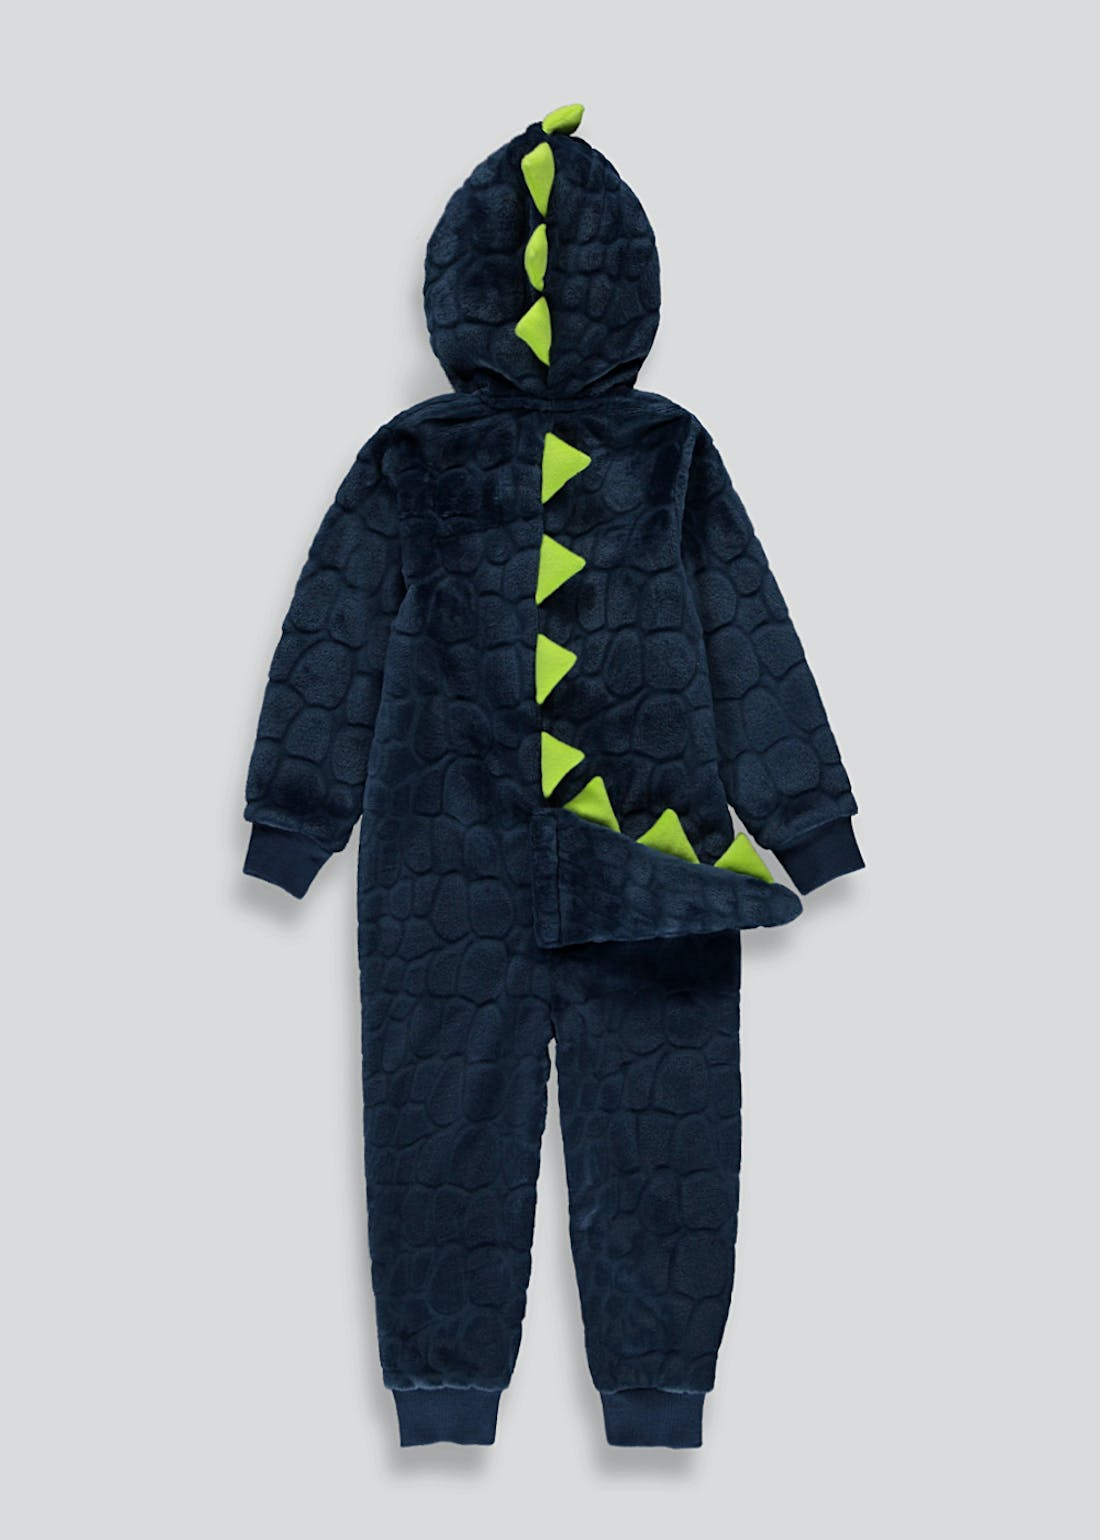 Kids Dinosaur Fleece Onesie (12mths-5yrs)